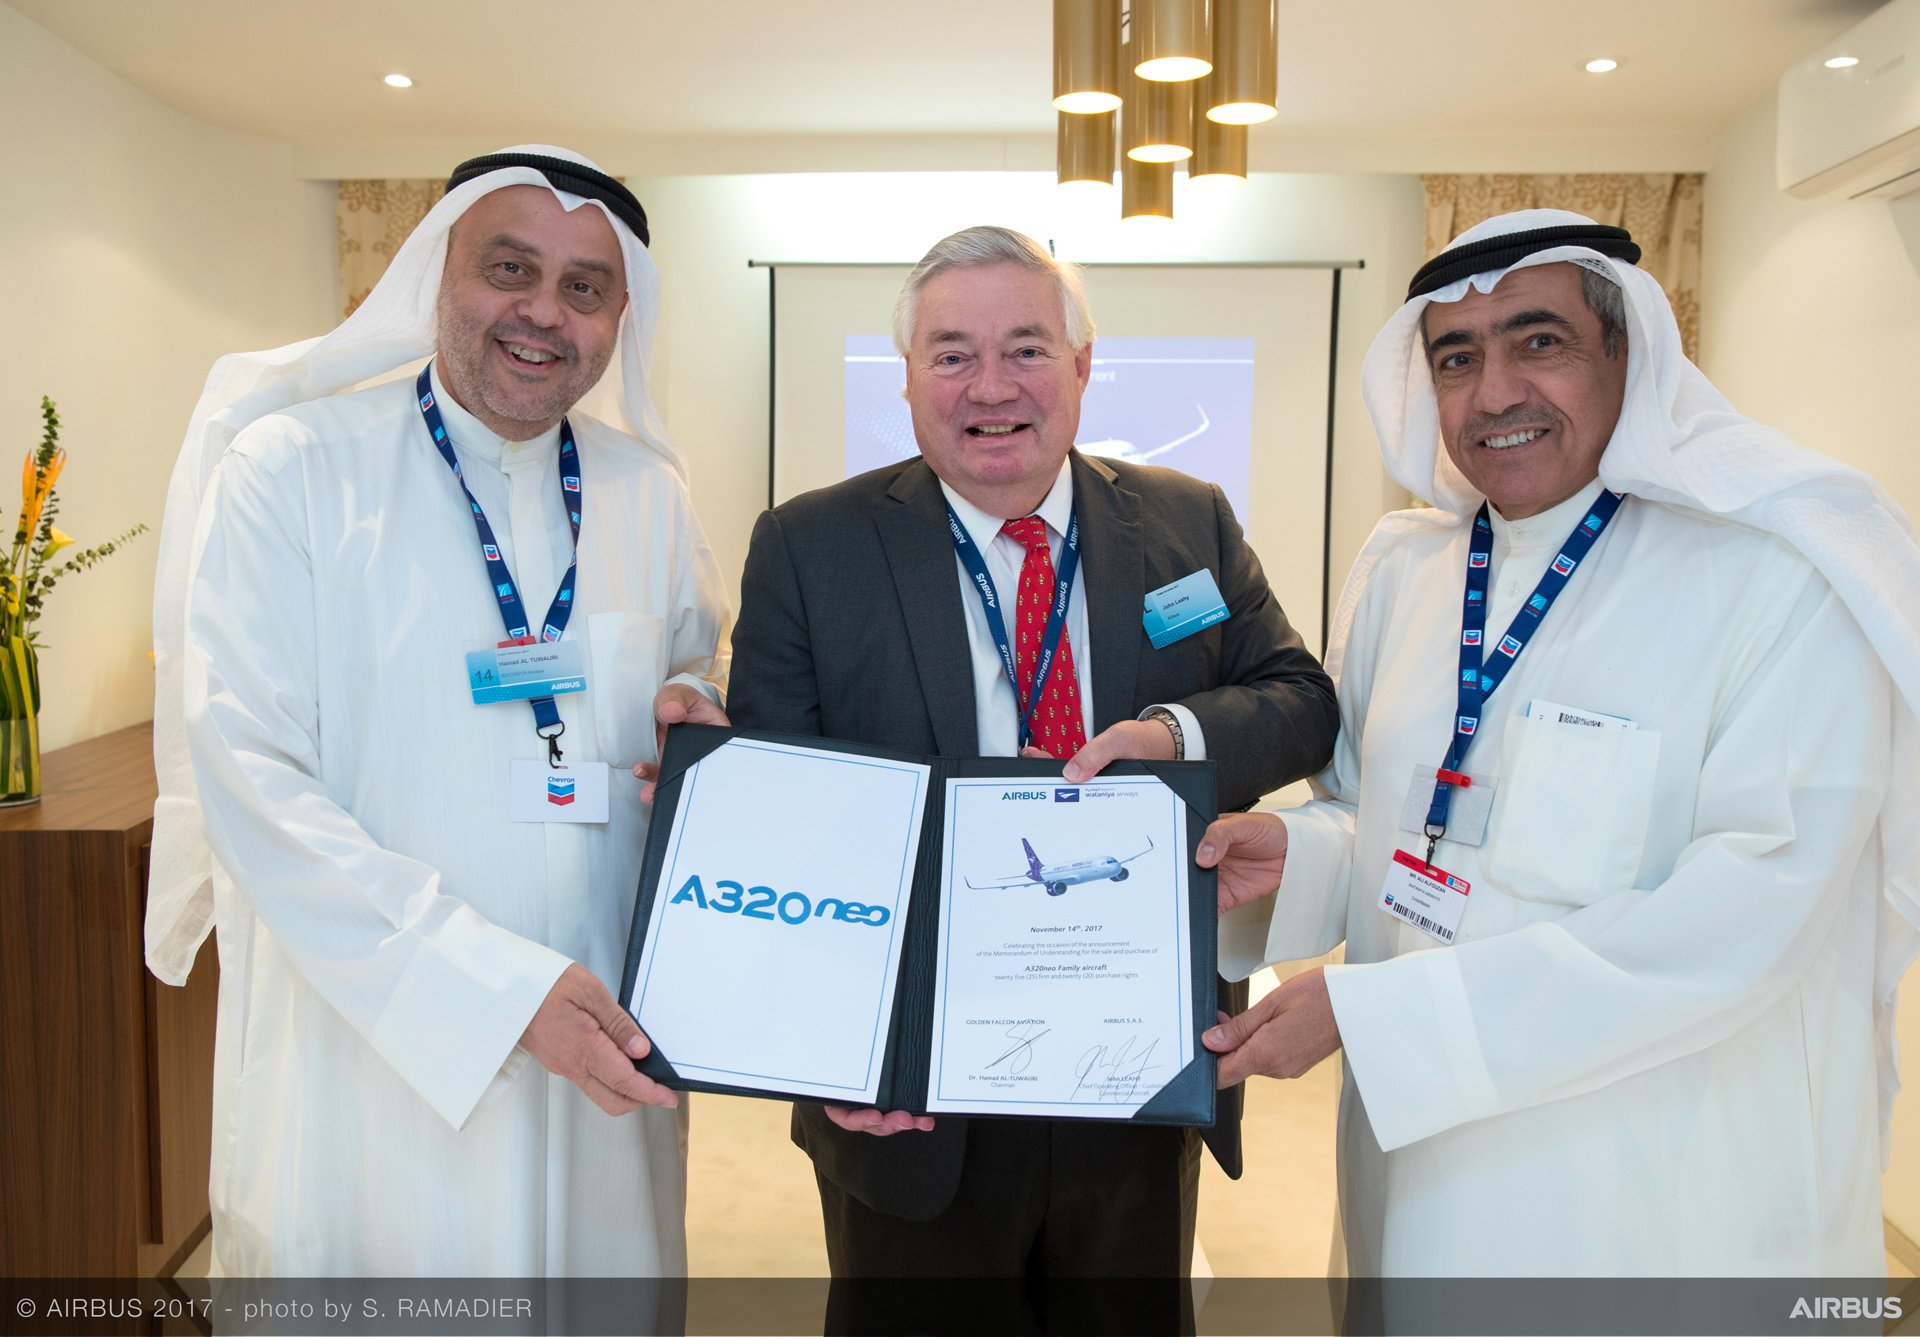 The A320neo Family will contribute to Wataniya Airways' strategic vision to become the fastest growing and leading airline in the Kuwait. From left to right: Dr. Hamad Al-Tuwaijri, Chairman of Golden Falcon Aviation; John Leahy, Chief Operating Officer Customers, Airbus Commercial Aircraft; and Ali Al Fouzan, Chairman of Wataniya Airways